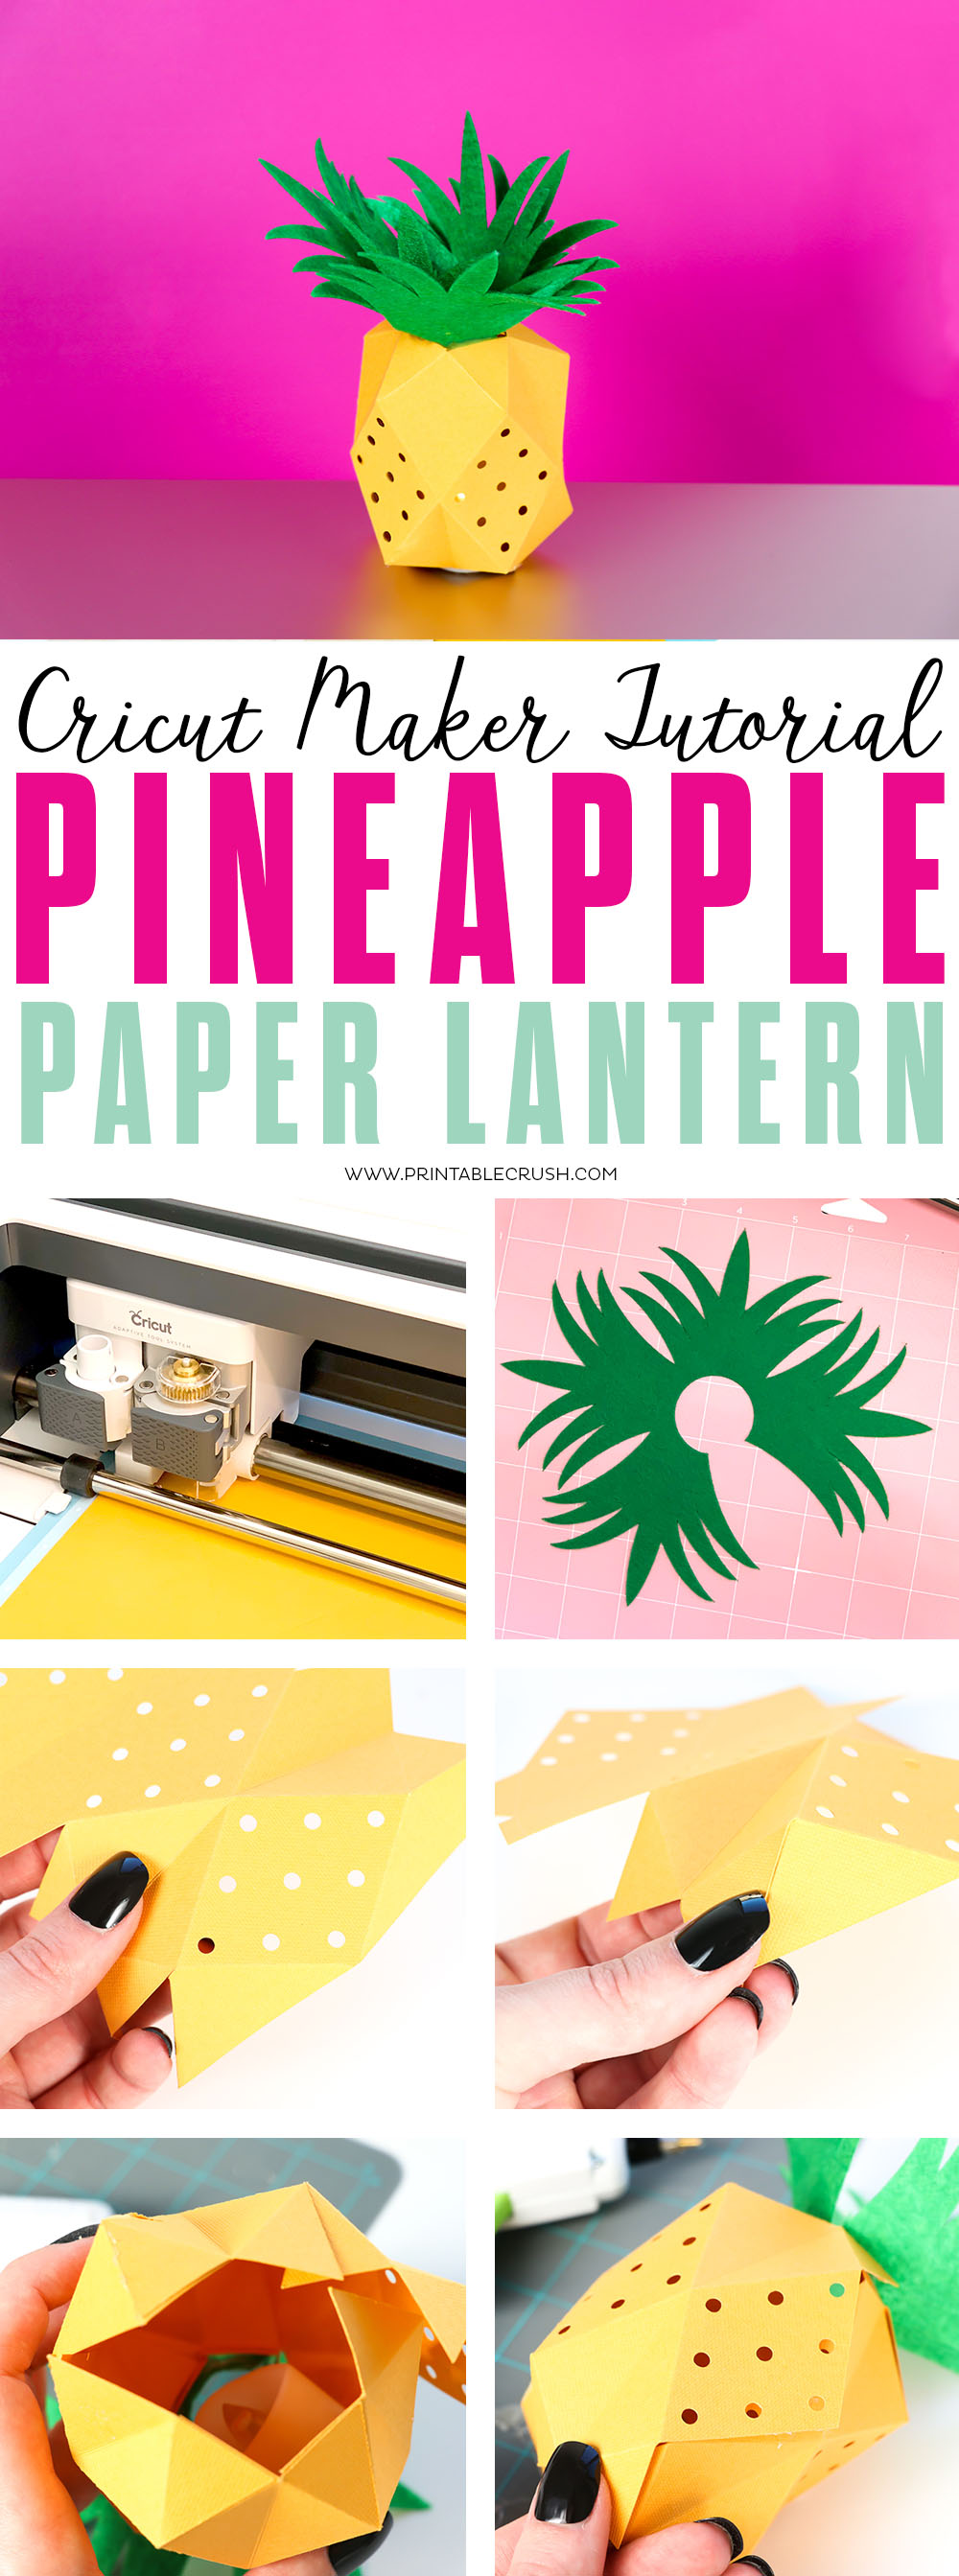 Check out this Paper Pineapple Lantern Tutorial made with the Cricut Maker Scoring Blade!